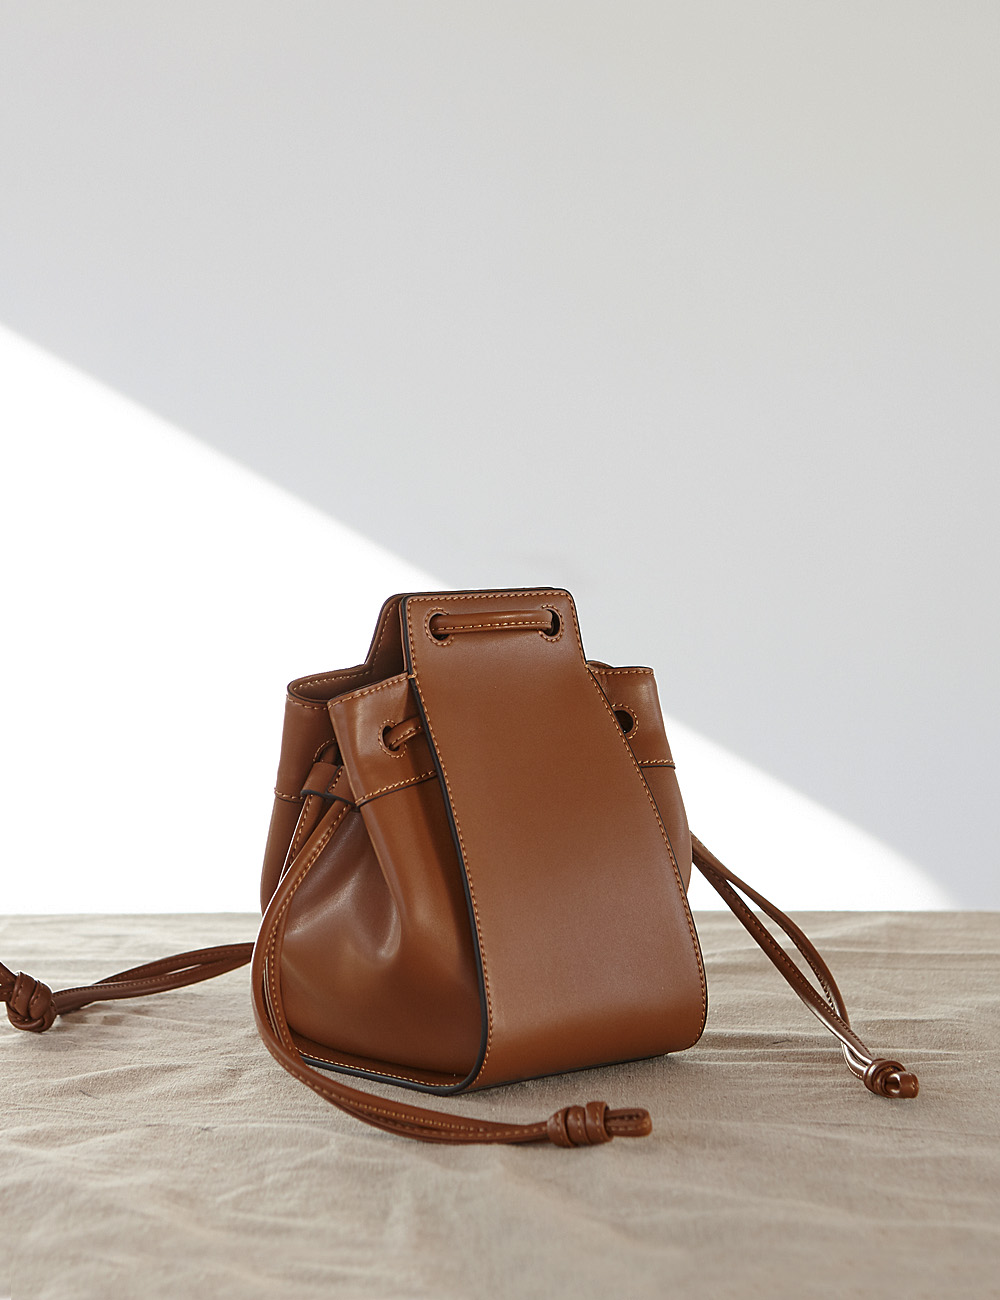 MAISON246,246 AME BAG - TAN,No.246